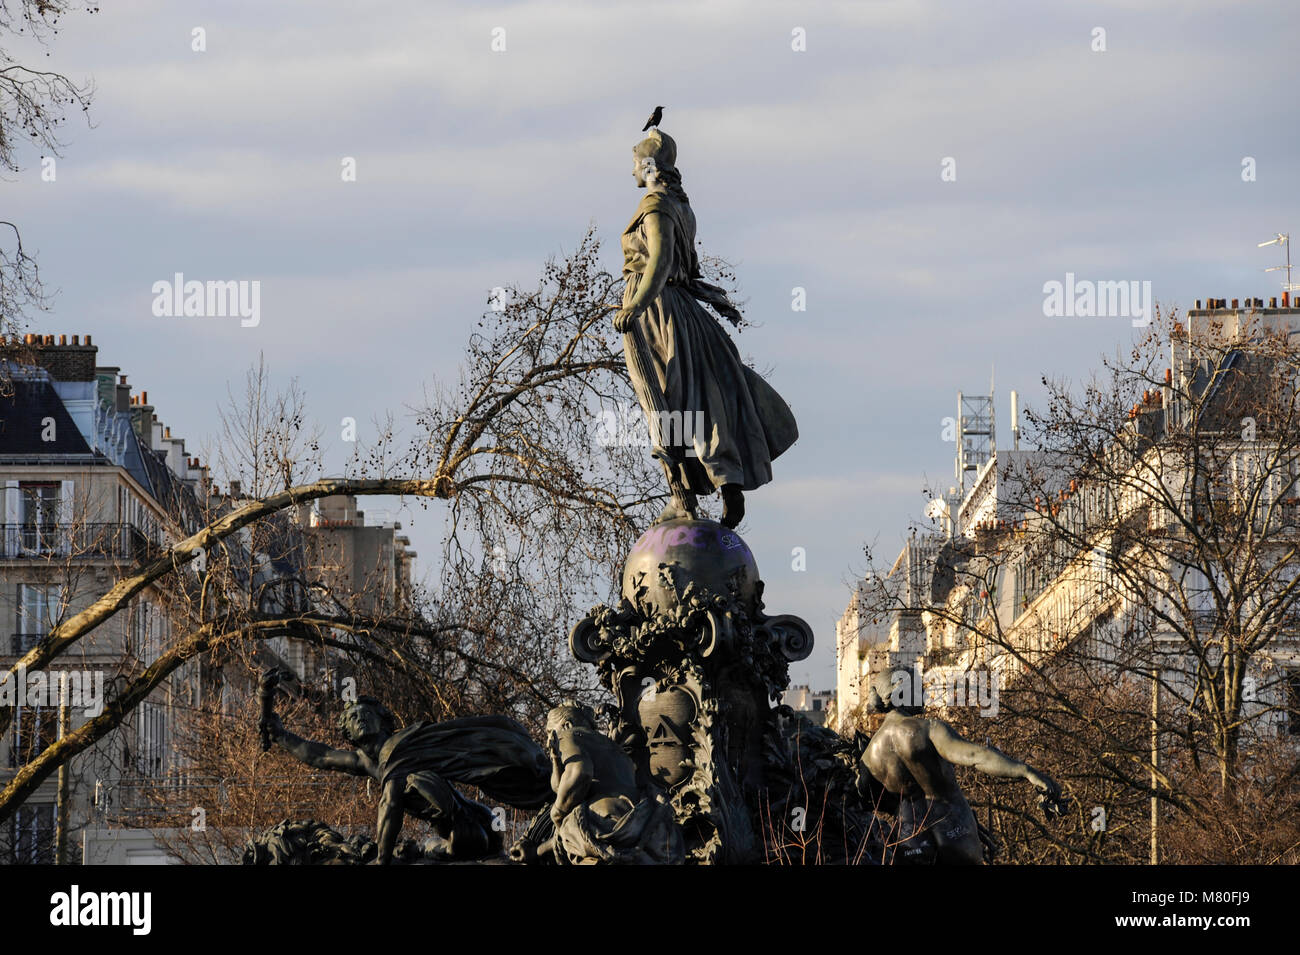 French Monuments Stock Photos French Monuments Stock Images Alamy